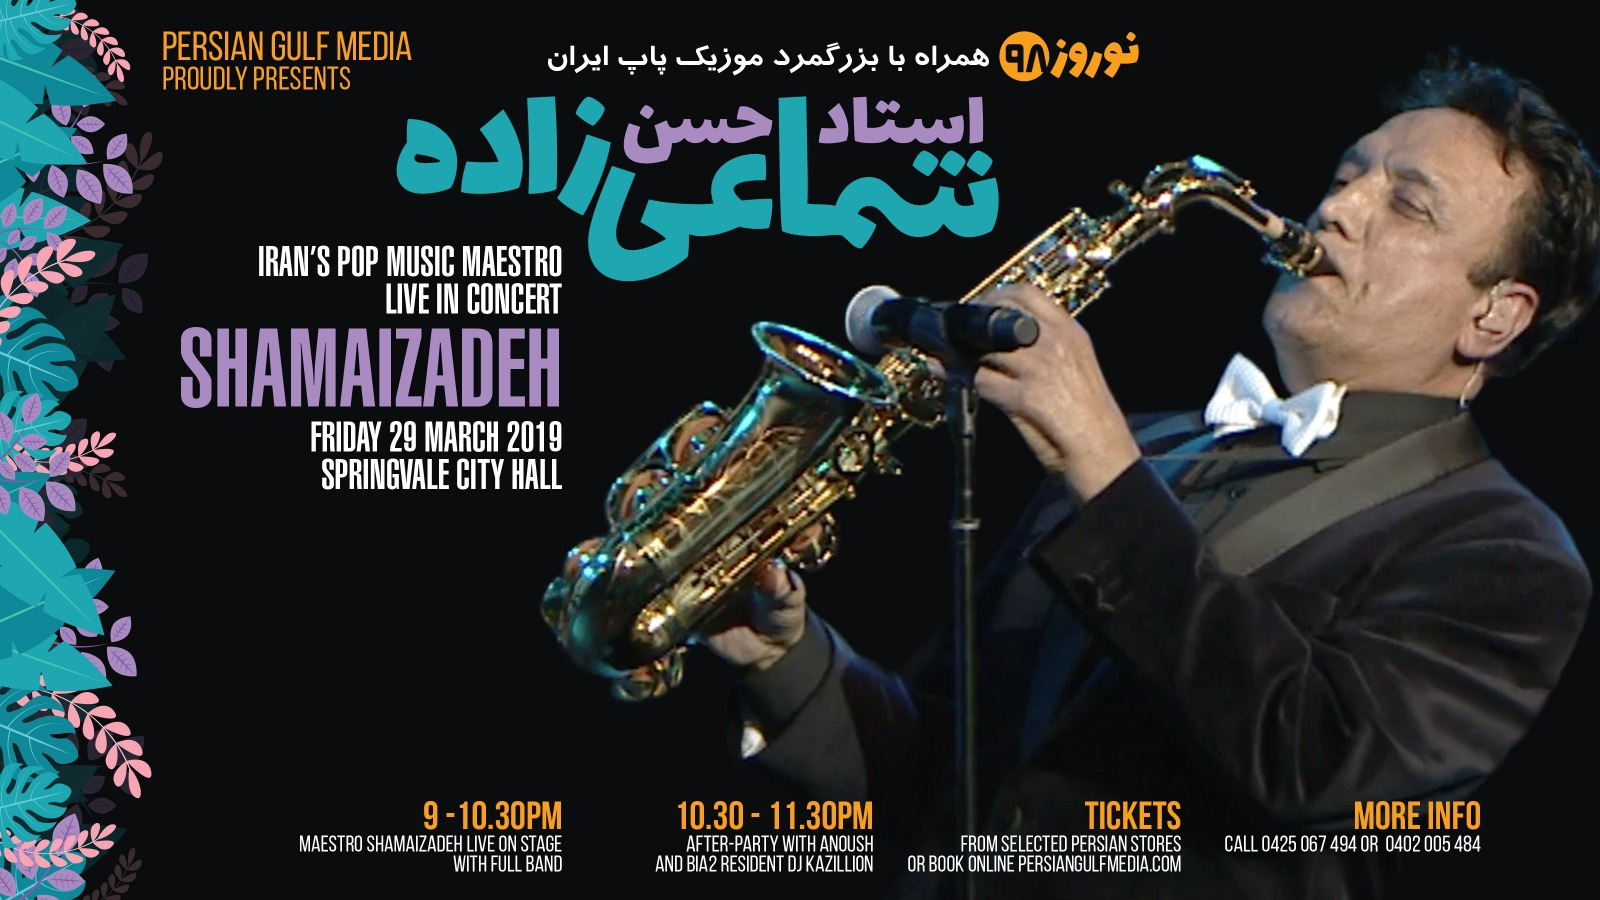 Tickets for SHAMIZADEH in MELBOURNE - NOROOZ concert in